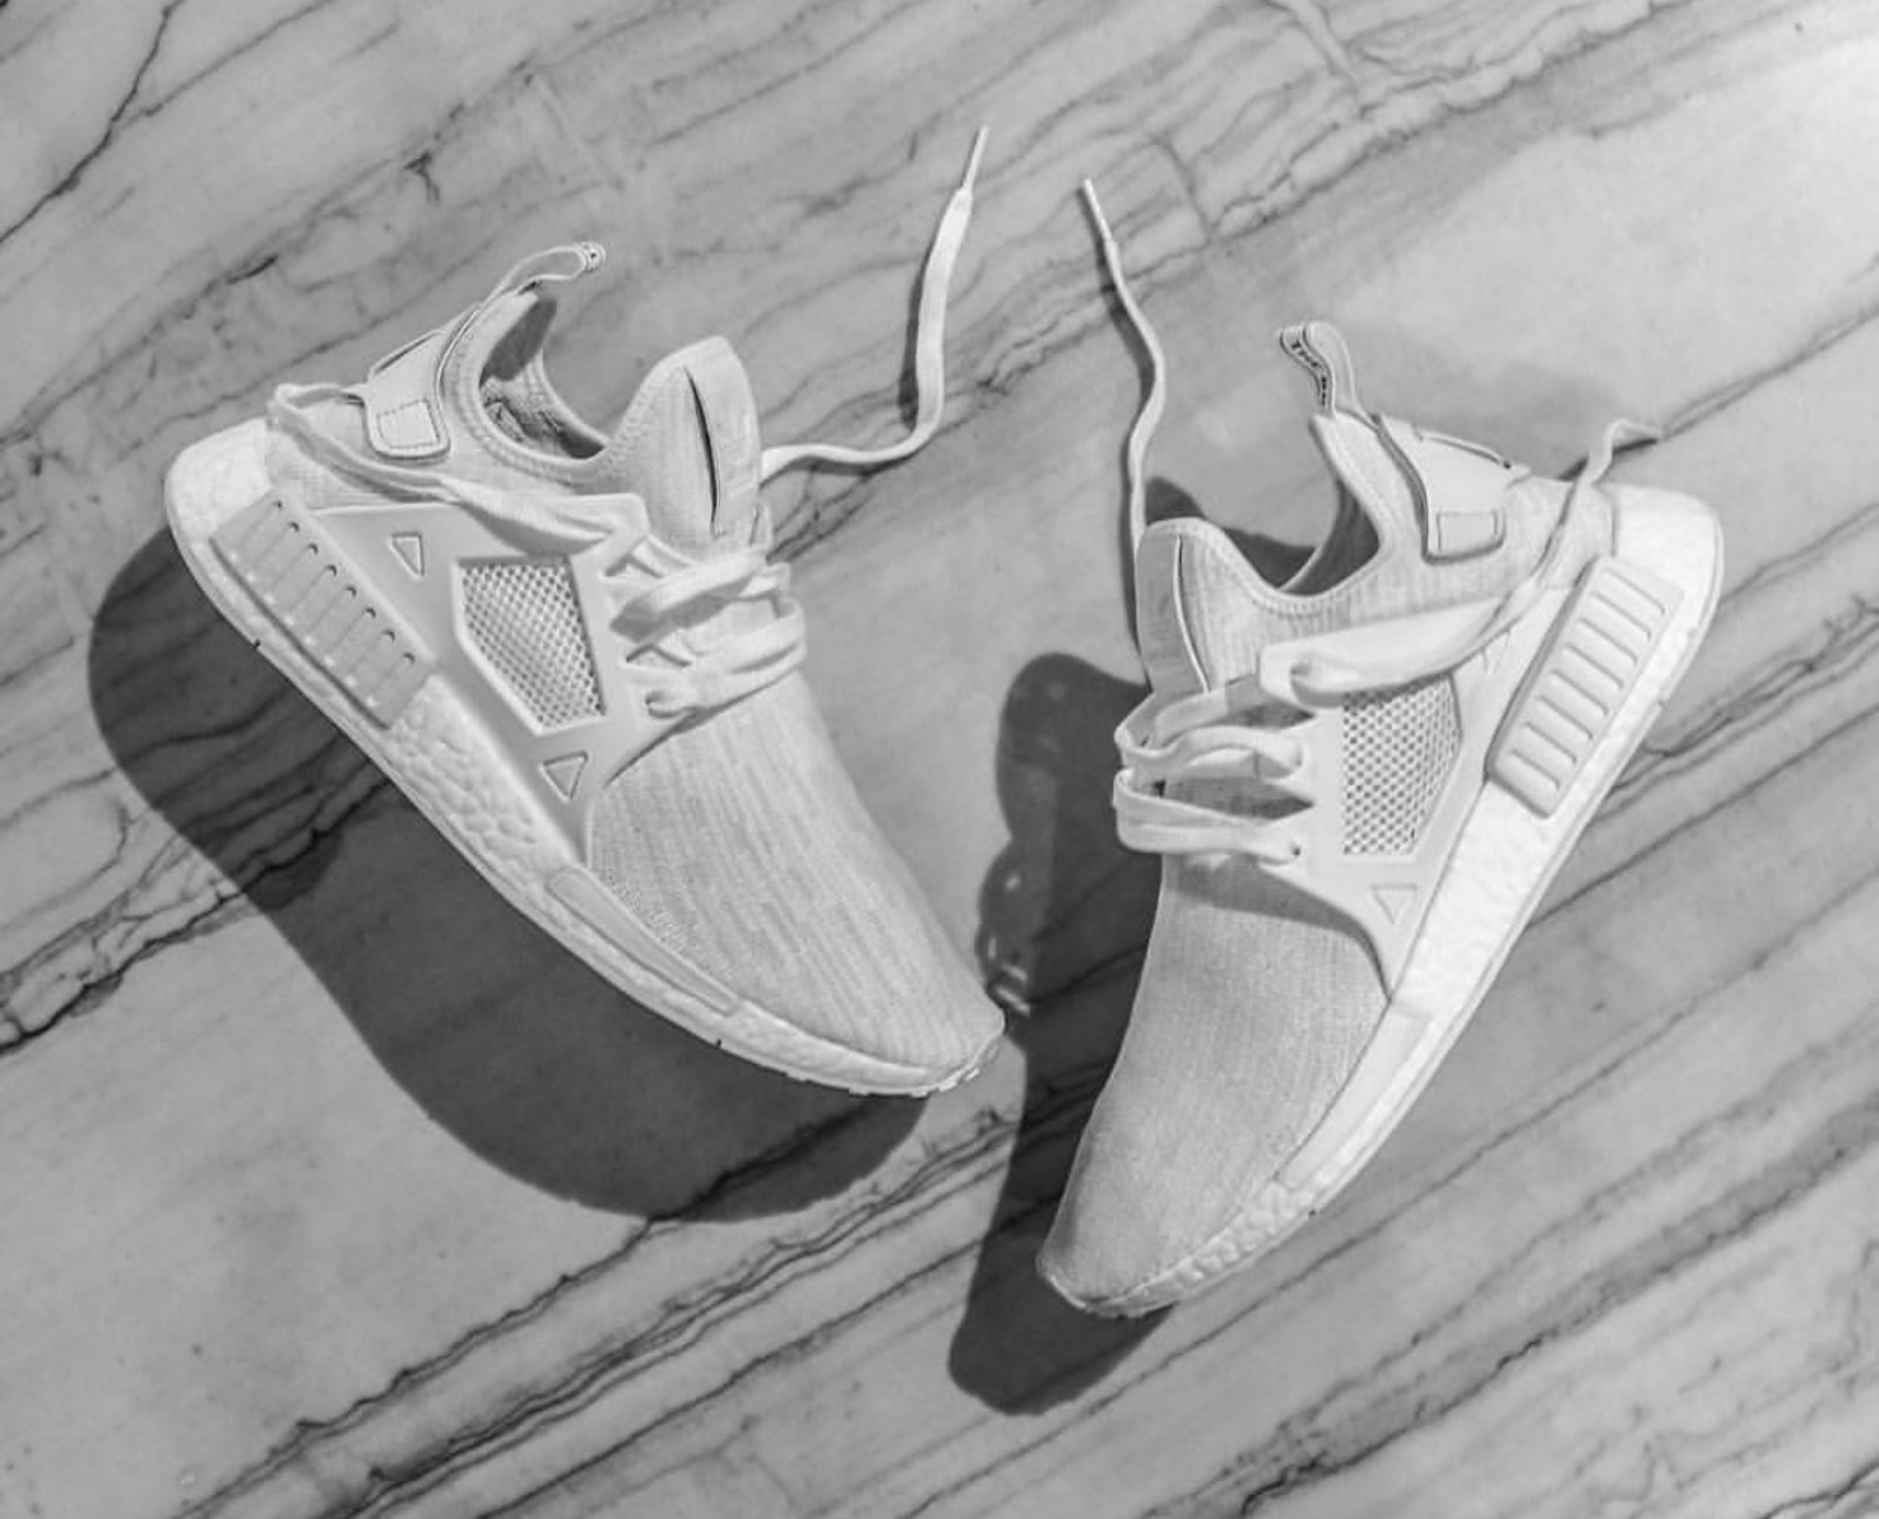 bfedbc75a9d79 The adidas NMD Gets Caged With This All White XR1 - Freshness Mag